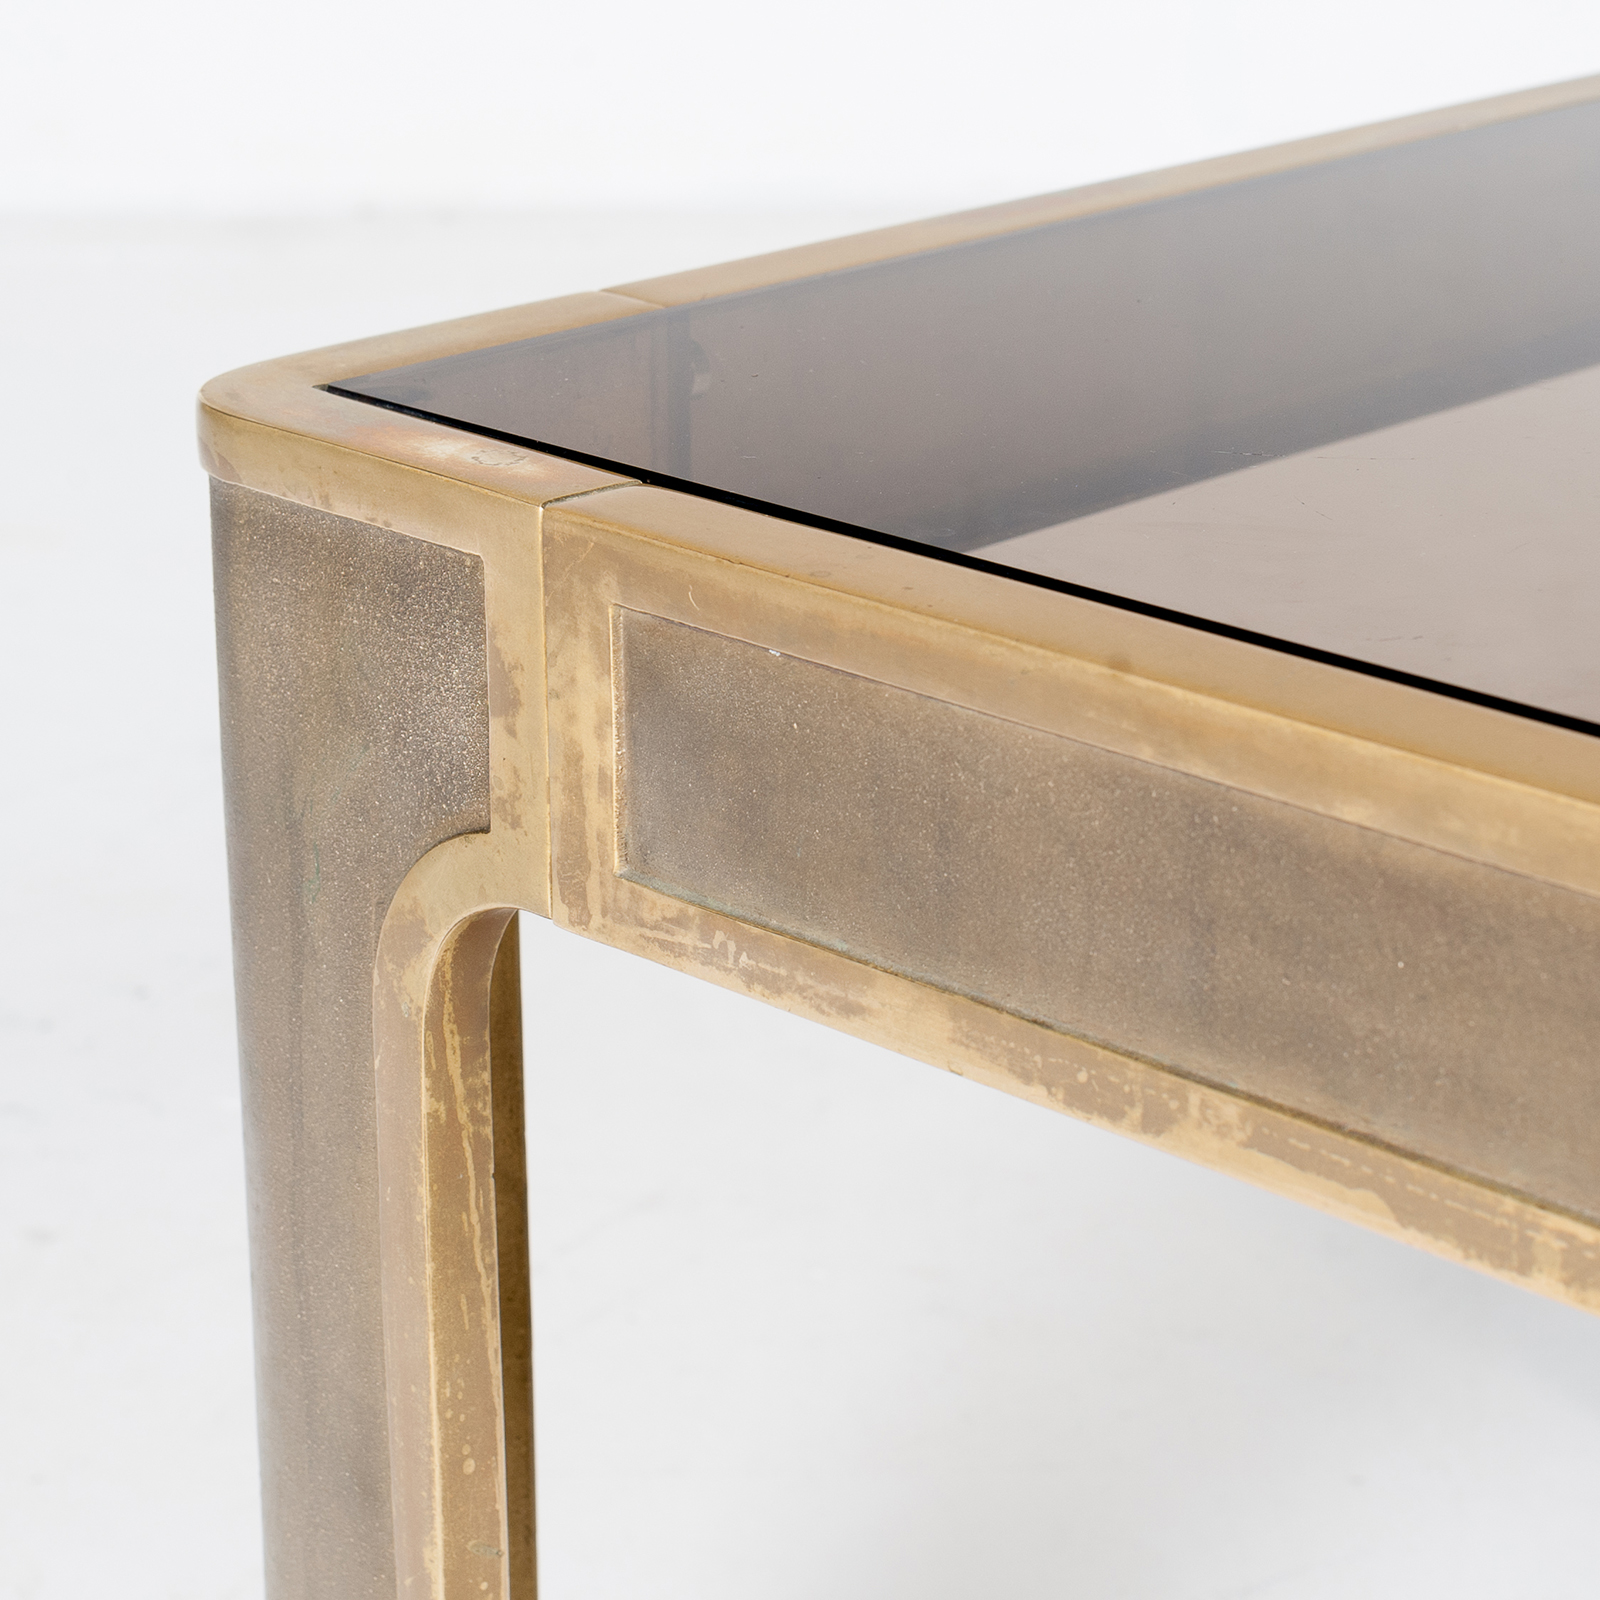 Square Coffee Table By Peter Ghyczy With Smoked Glass Top And Embossed Base, 1970s, The Netherlands900